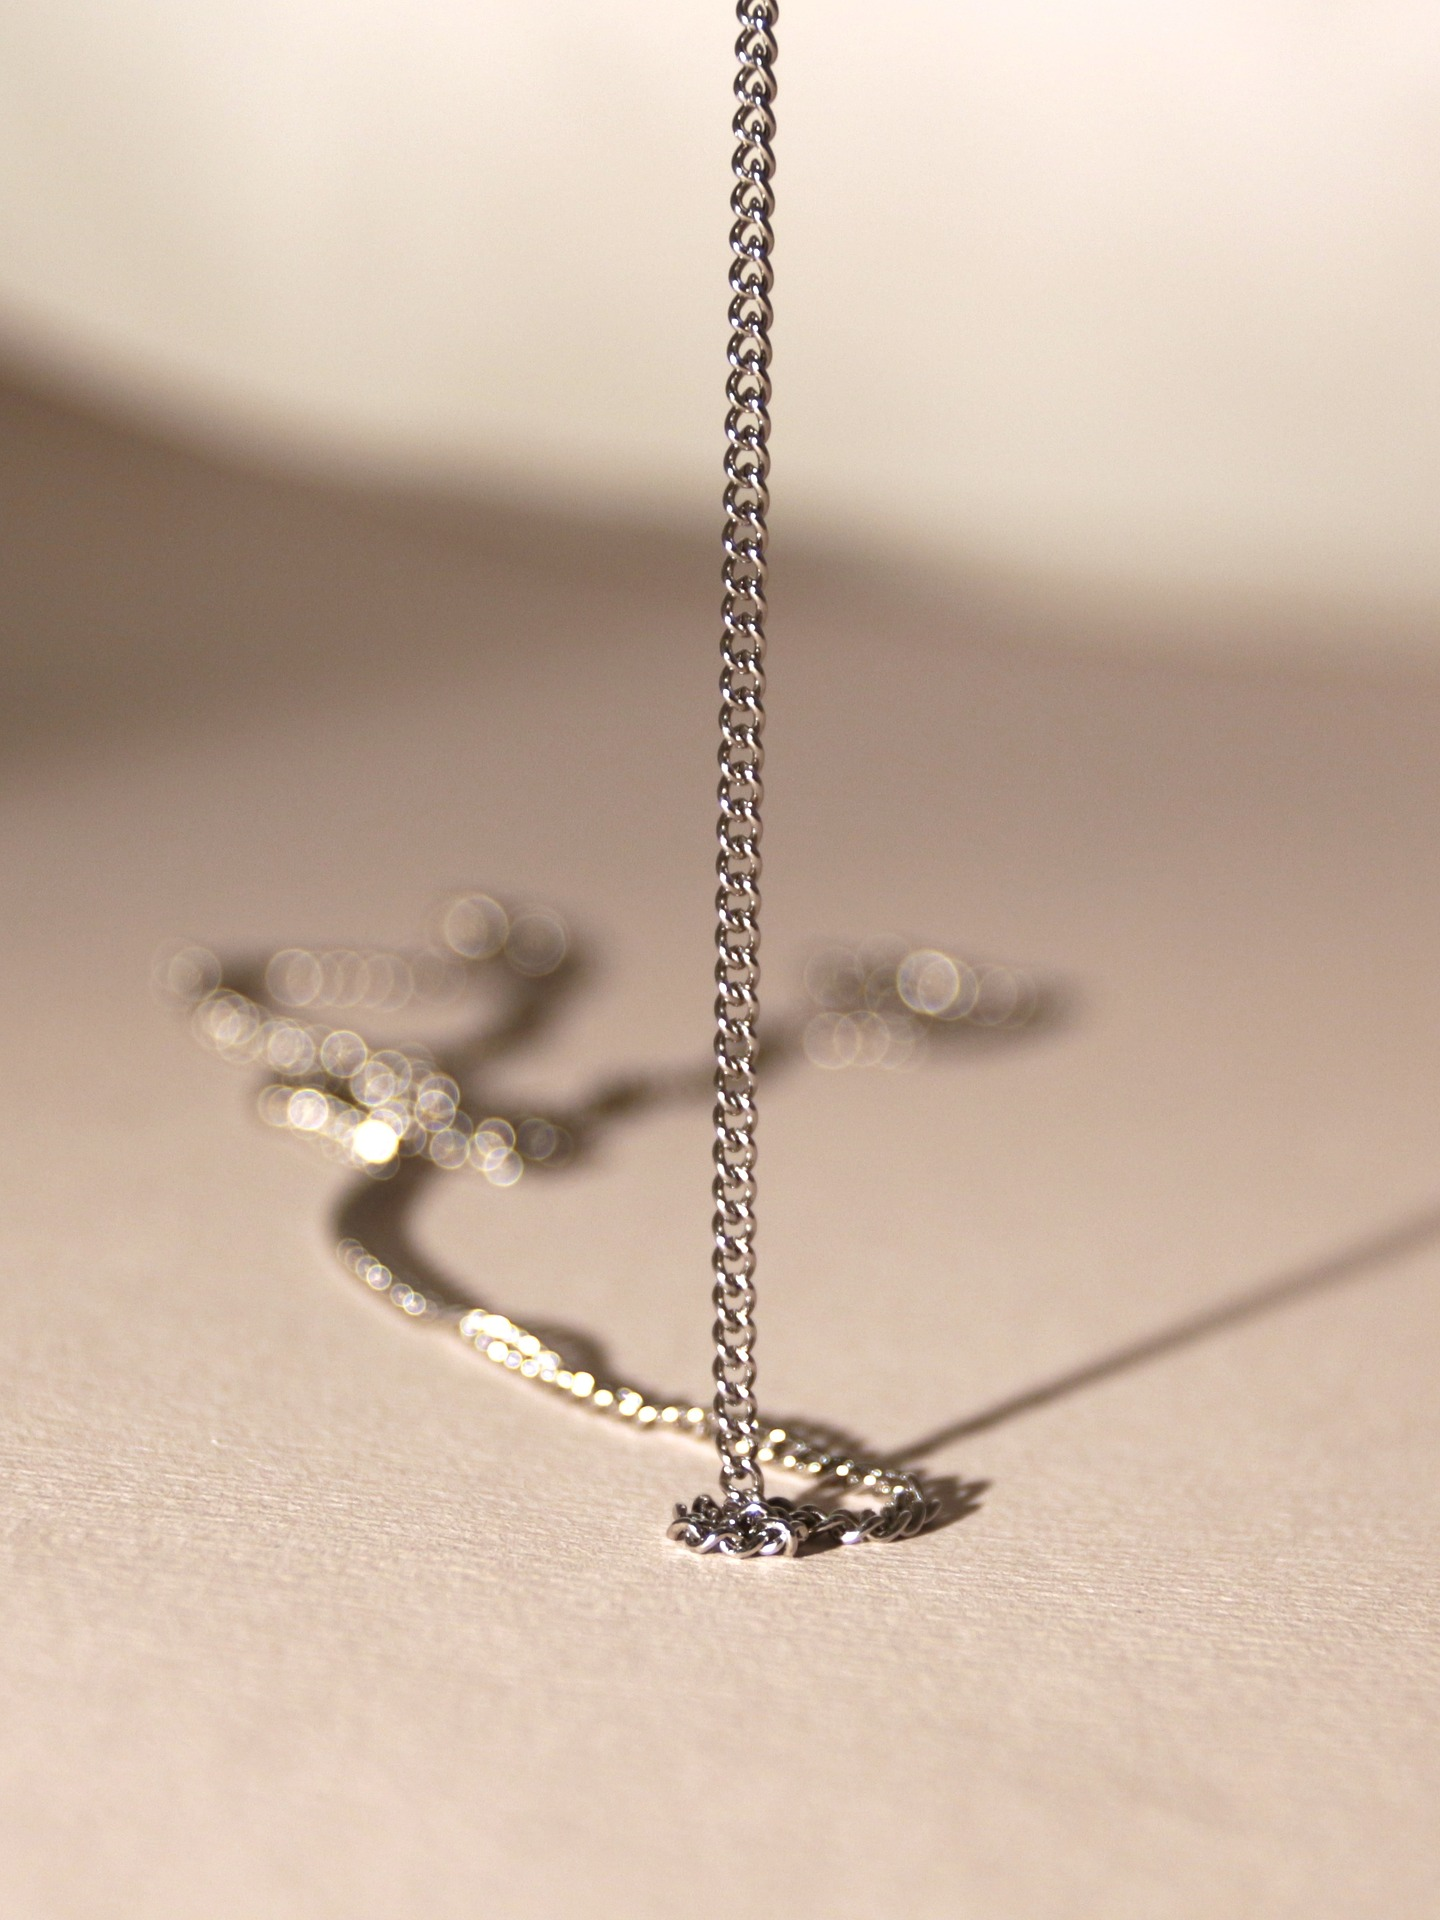 Trendy Waterproof Necklace Stands Out!